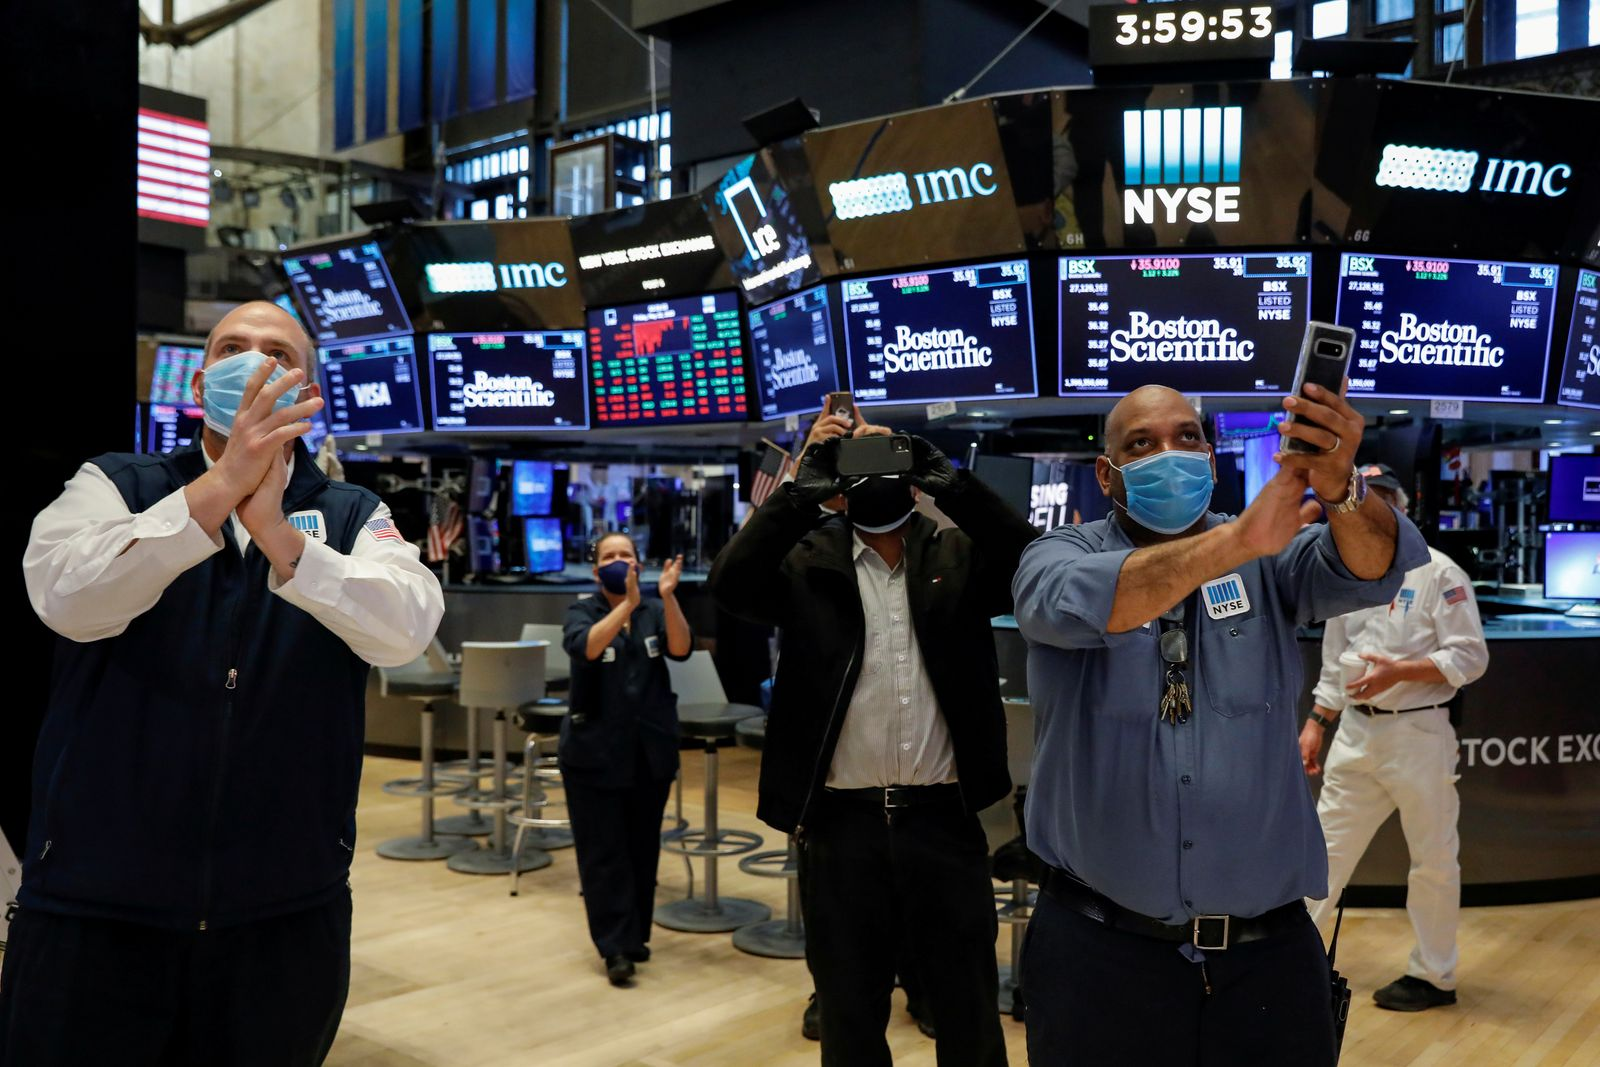 FILE PHOTO: Workers celebrate the during closing bell, as they prepare for the return to trading, on the floor at the NYSE in New York